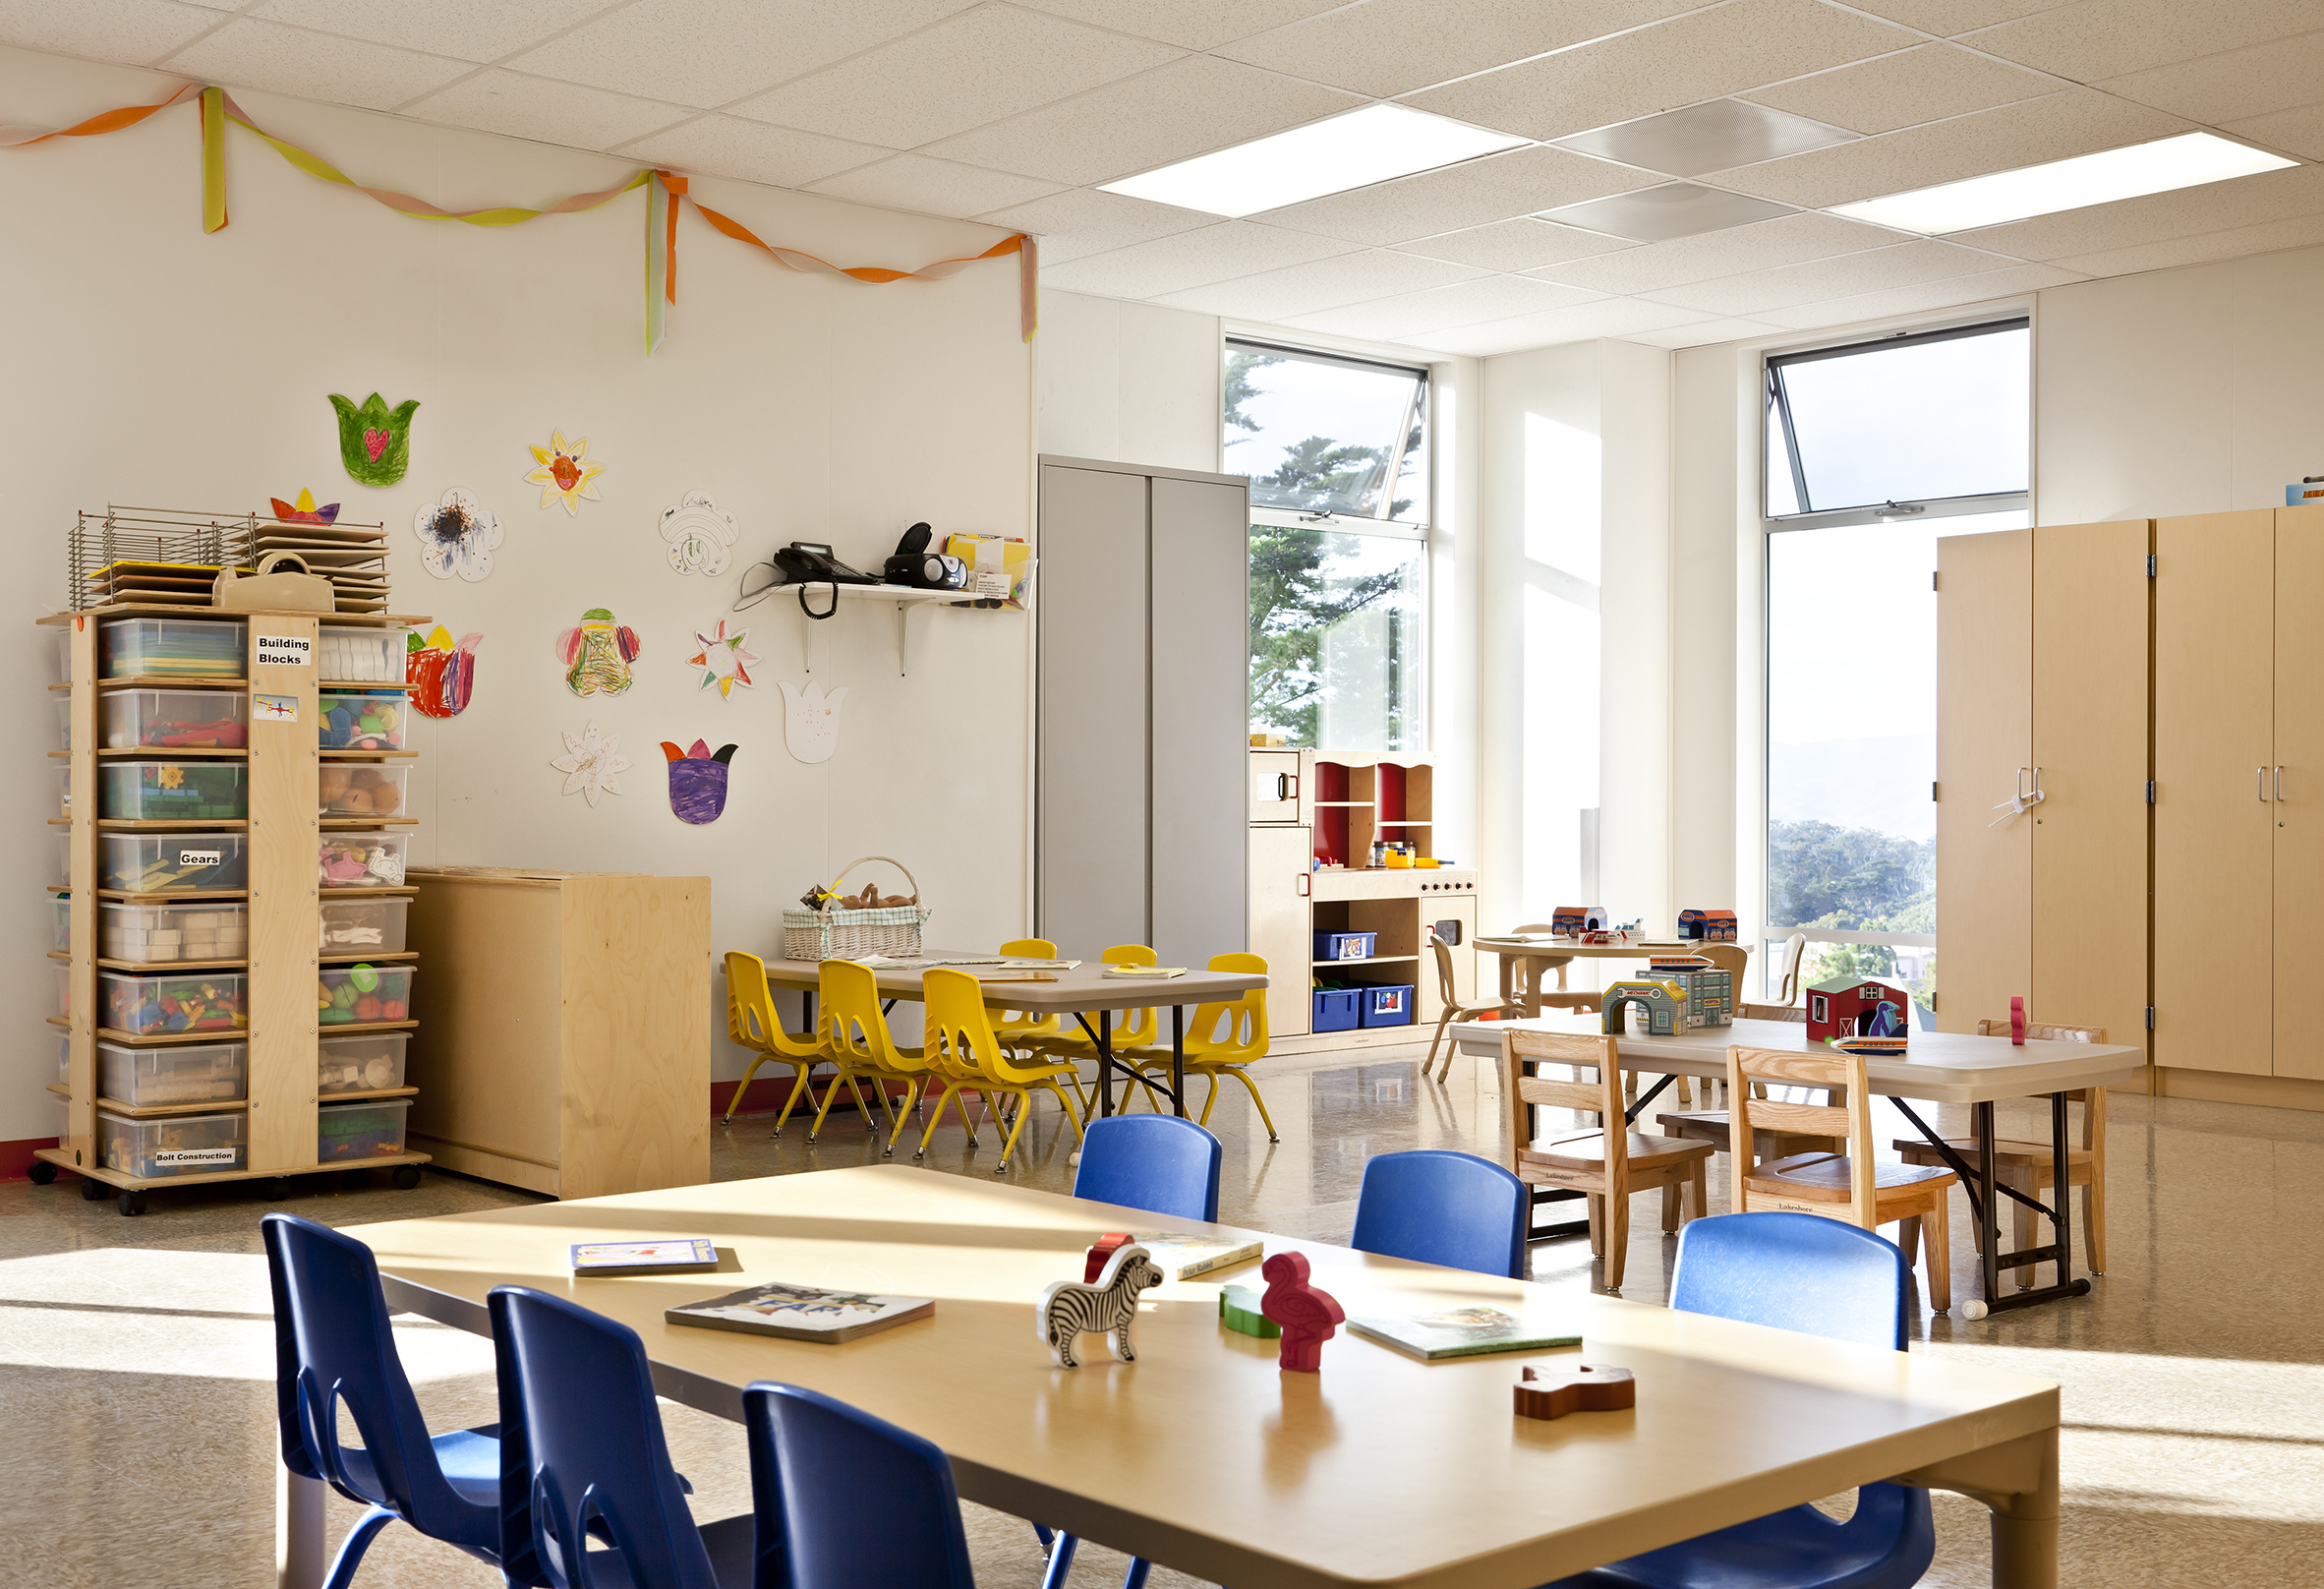 UCSF Kirkham Child Development Center Classroom Interior